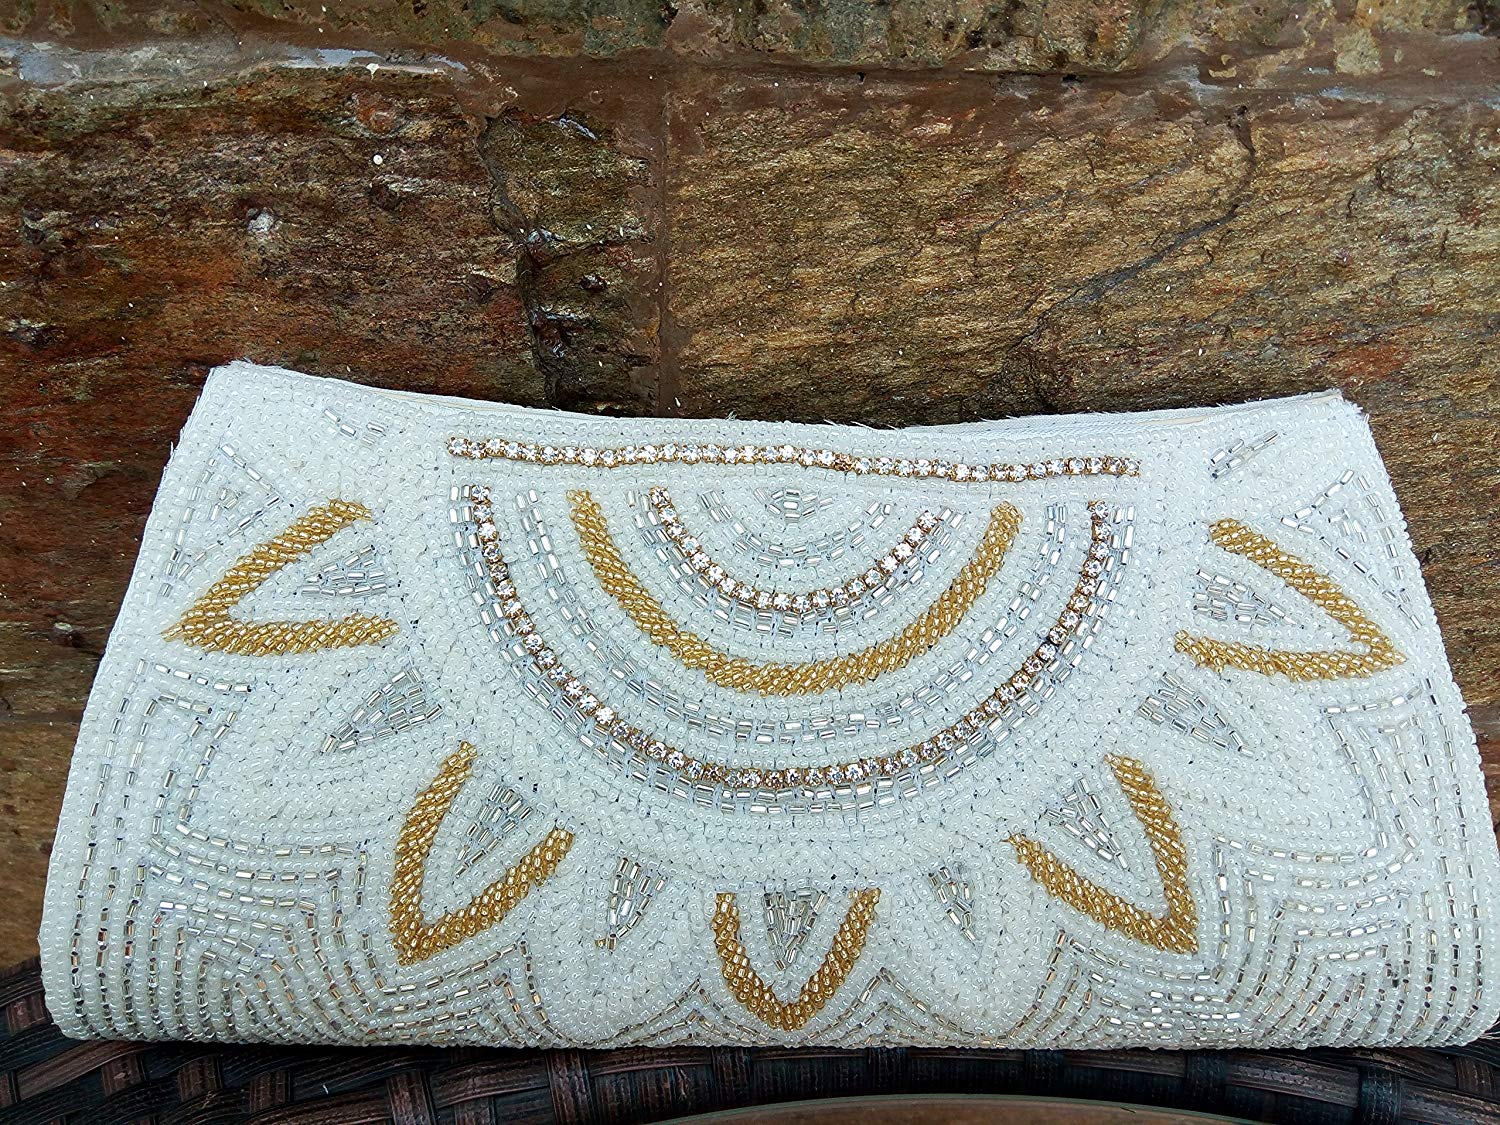 Artcraving Ivory clutch, Classy Minaudière, hand crafted beaded clutch, Portefeuille Femmes,Pearl evening clutch, Bridal clutch